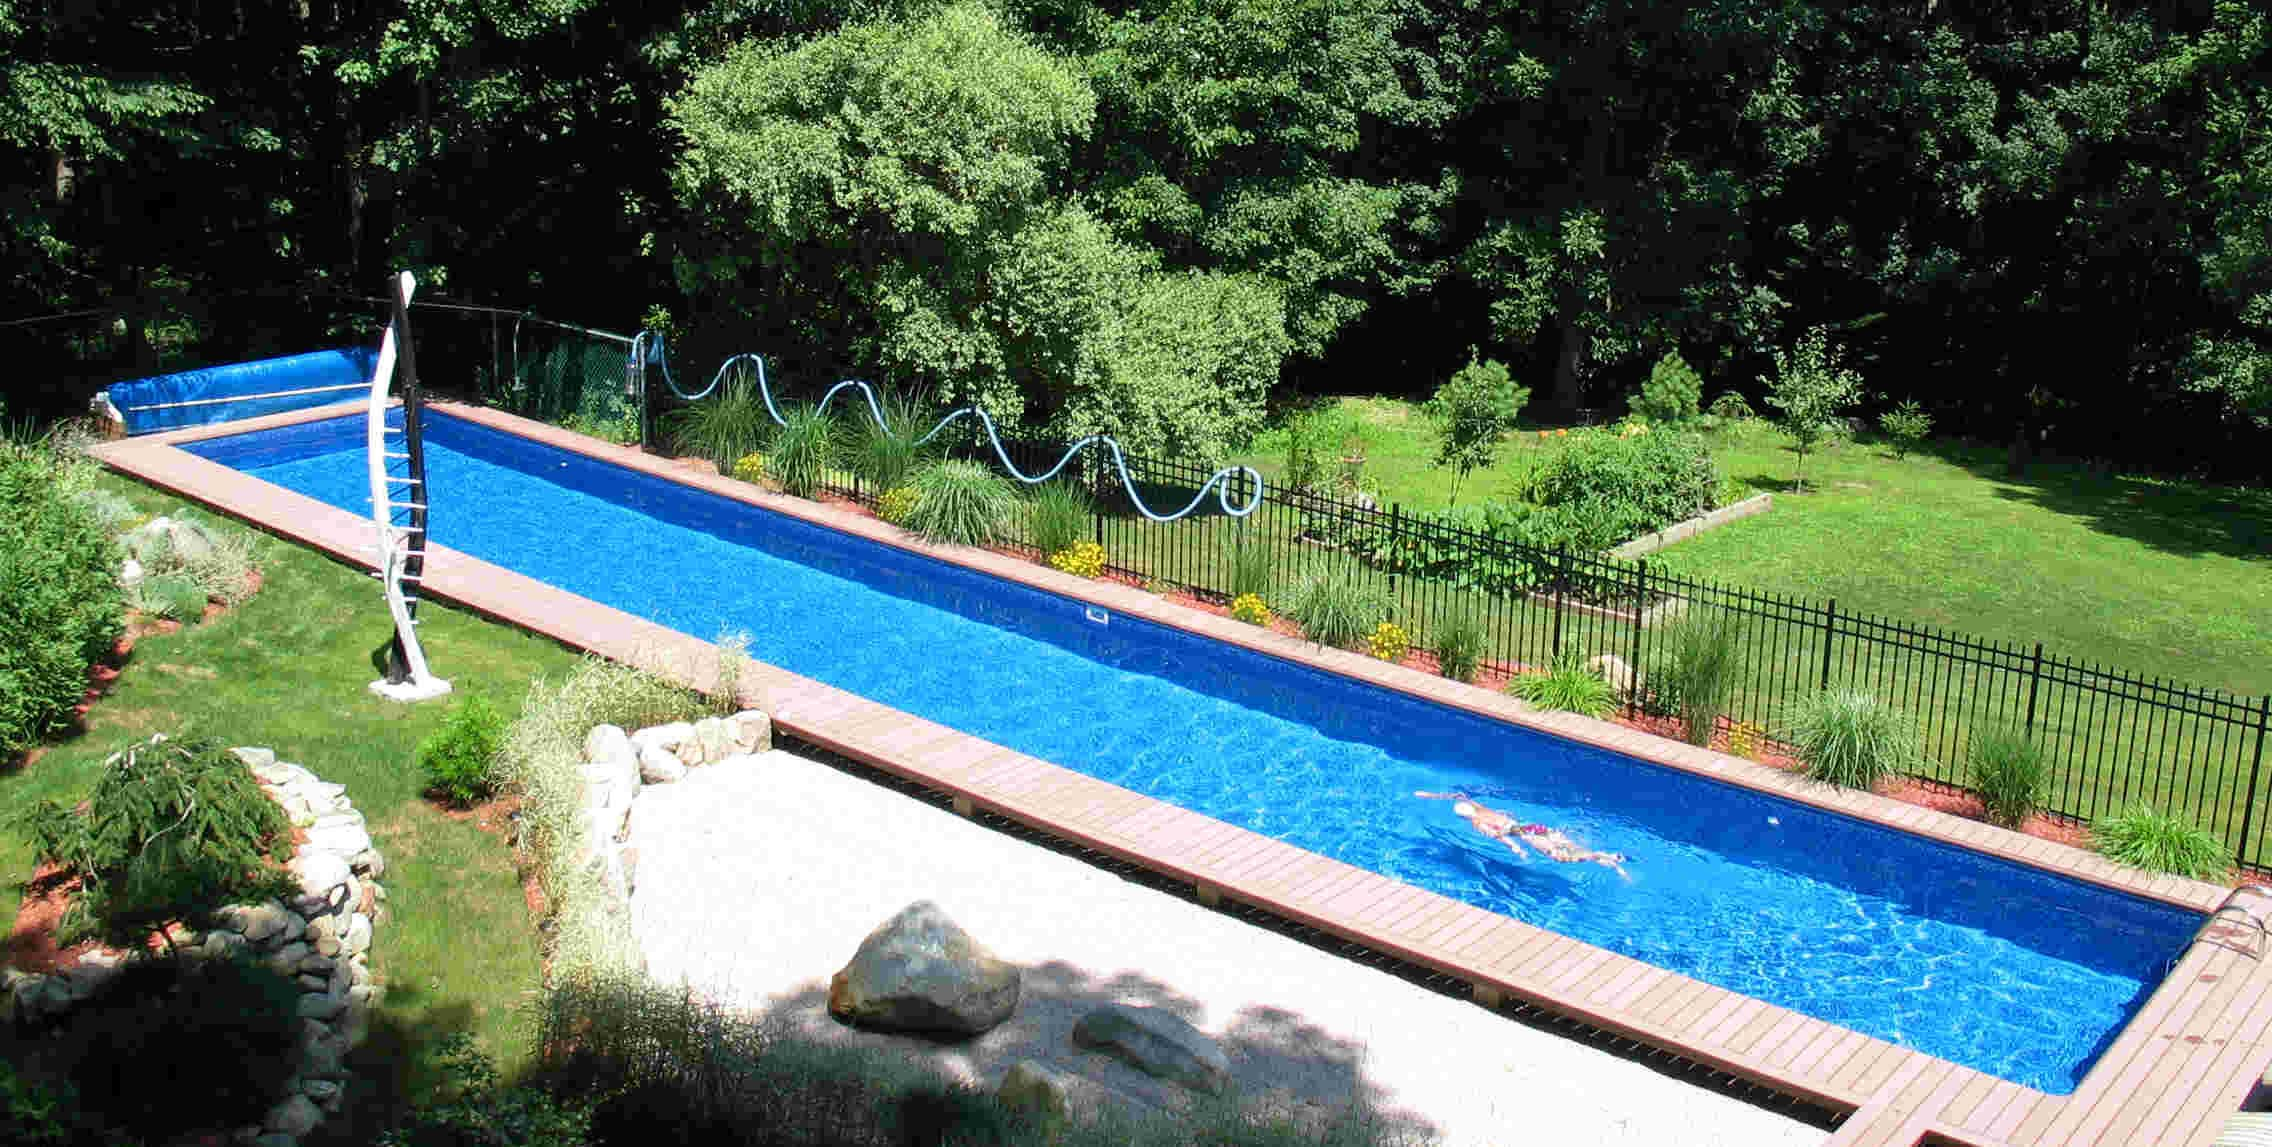 Diy Inground Pool >> Diy Inground Swimming Pool Backyard Design Ideas